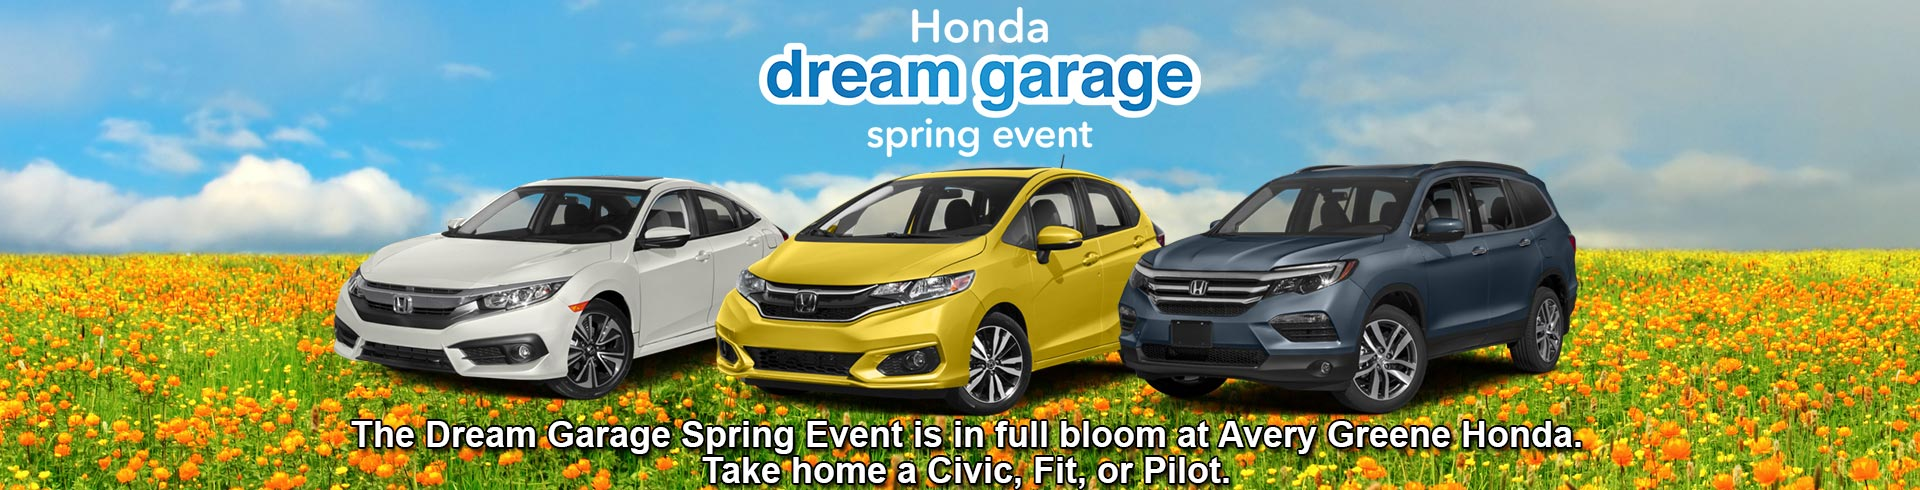 Dream-Garage-Spring-Event-2018-1920x490.jpg